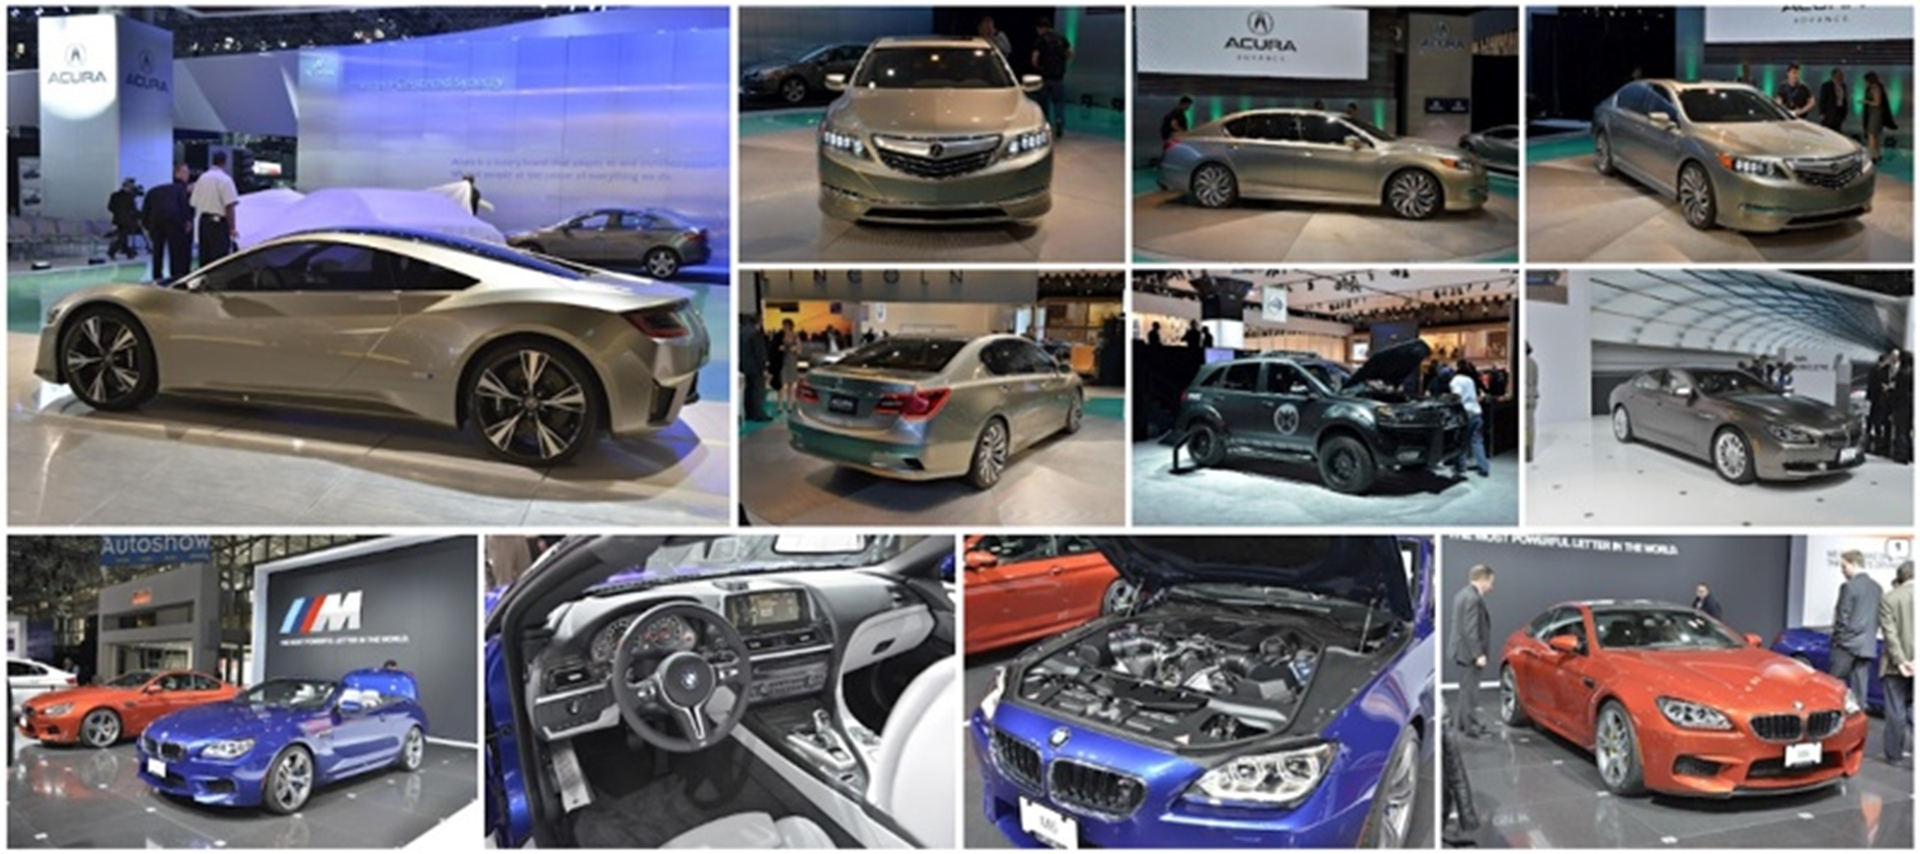 New York Auto Show Images